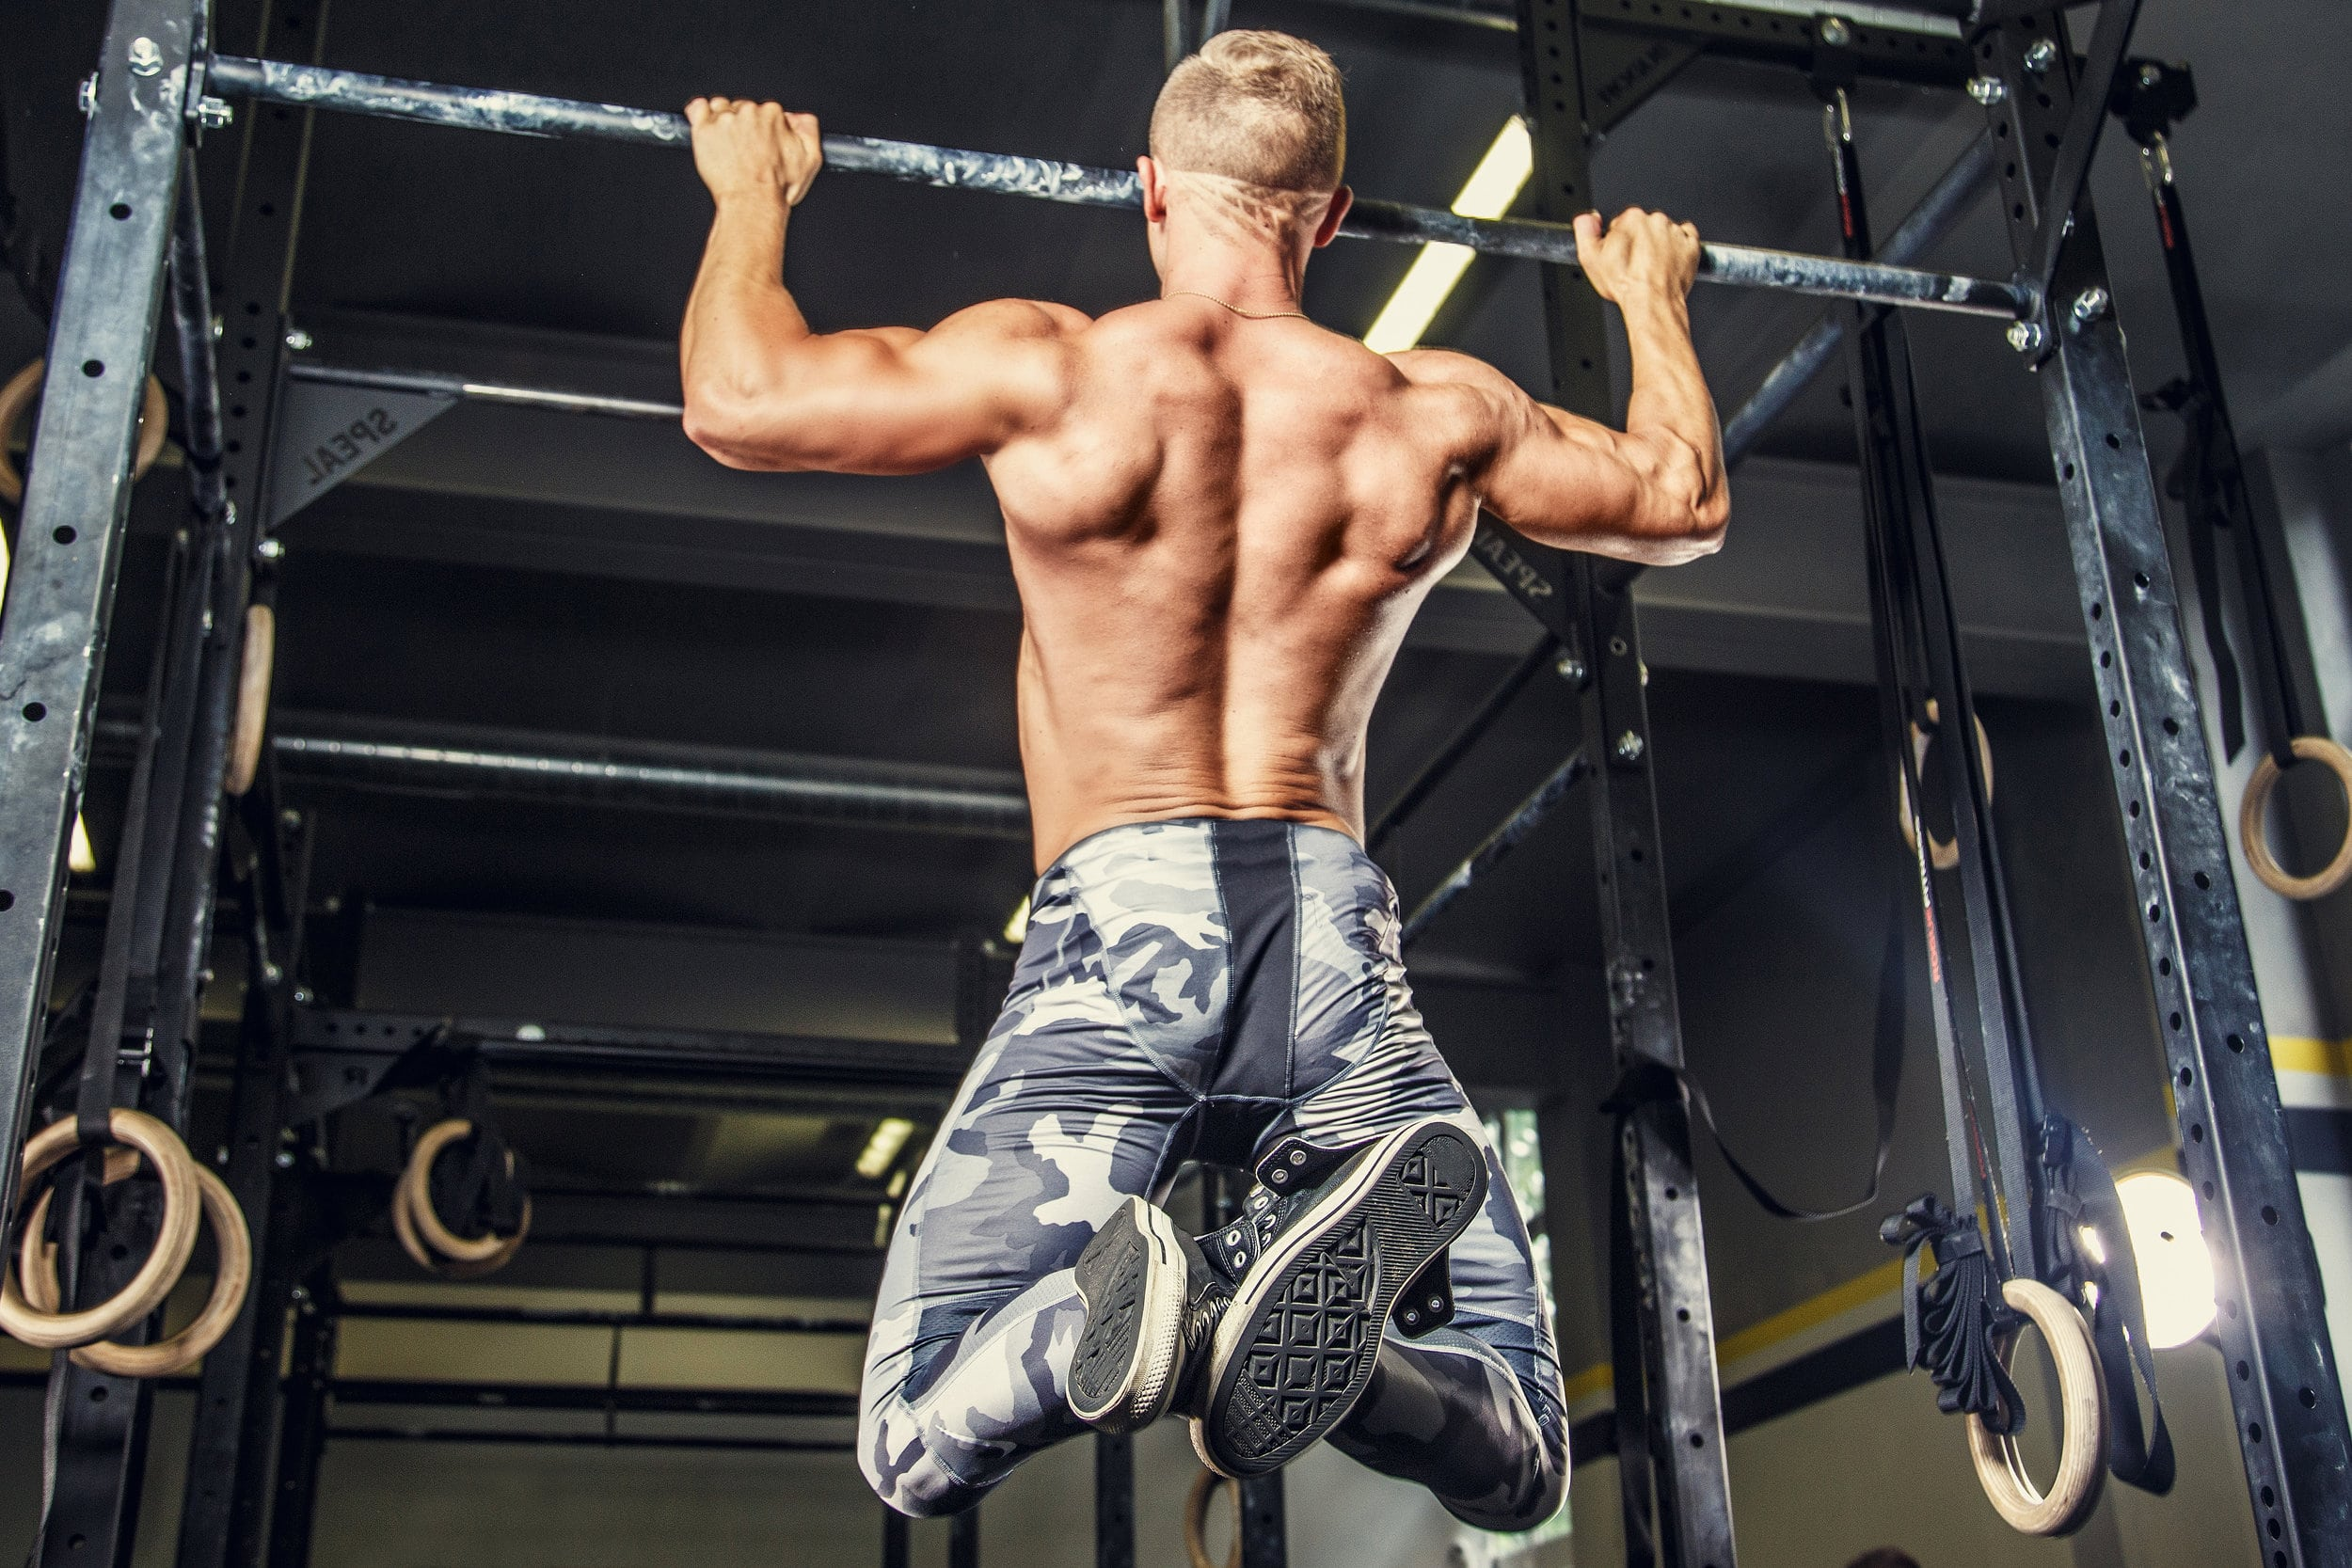 How to perform pull-ups with a wide grip on the crossbar